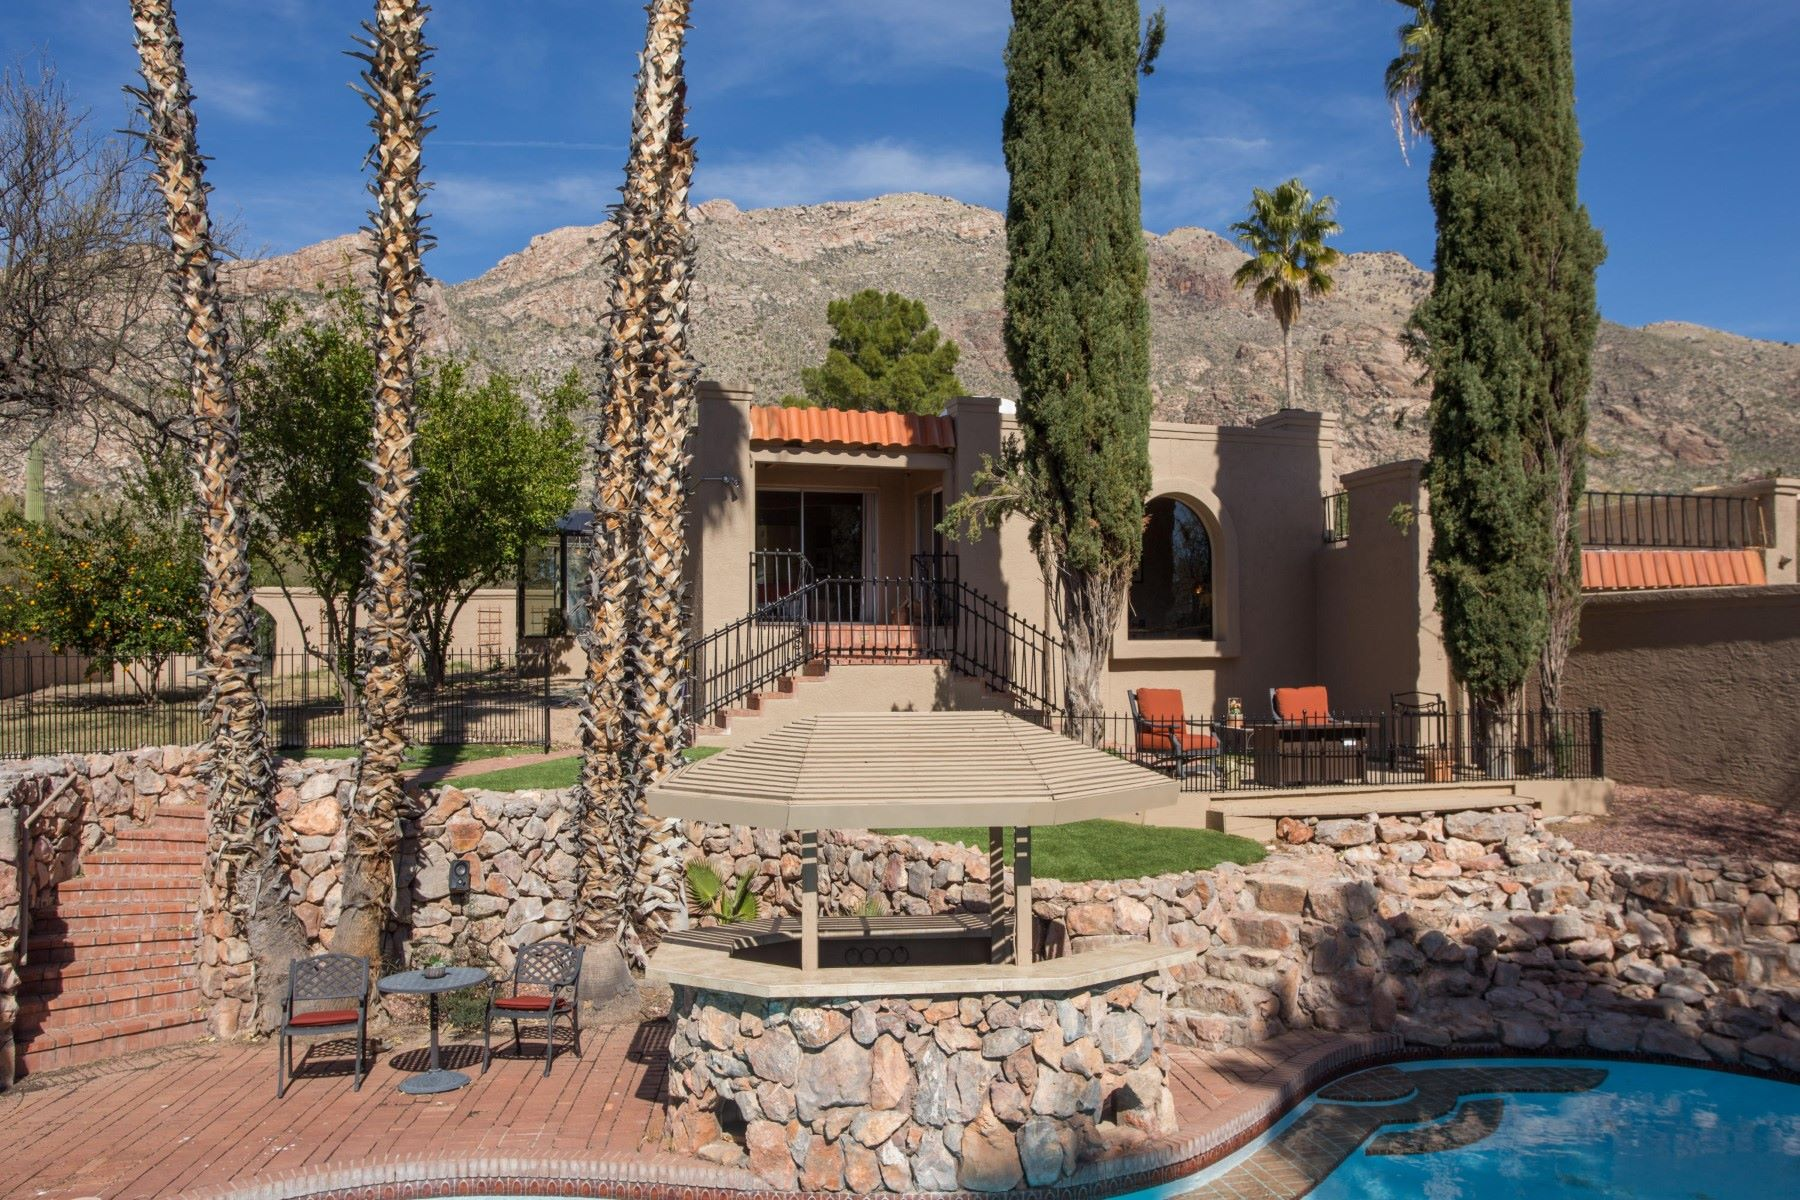 Casa Unifamiliar por un Venta en Charming Mediterranean style home with resort pool area 6715 N Mamaronick Drive Tucson, Arizona, 85718 Estados Unidos